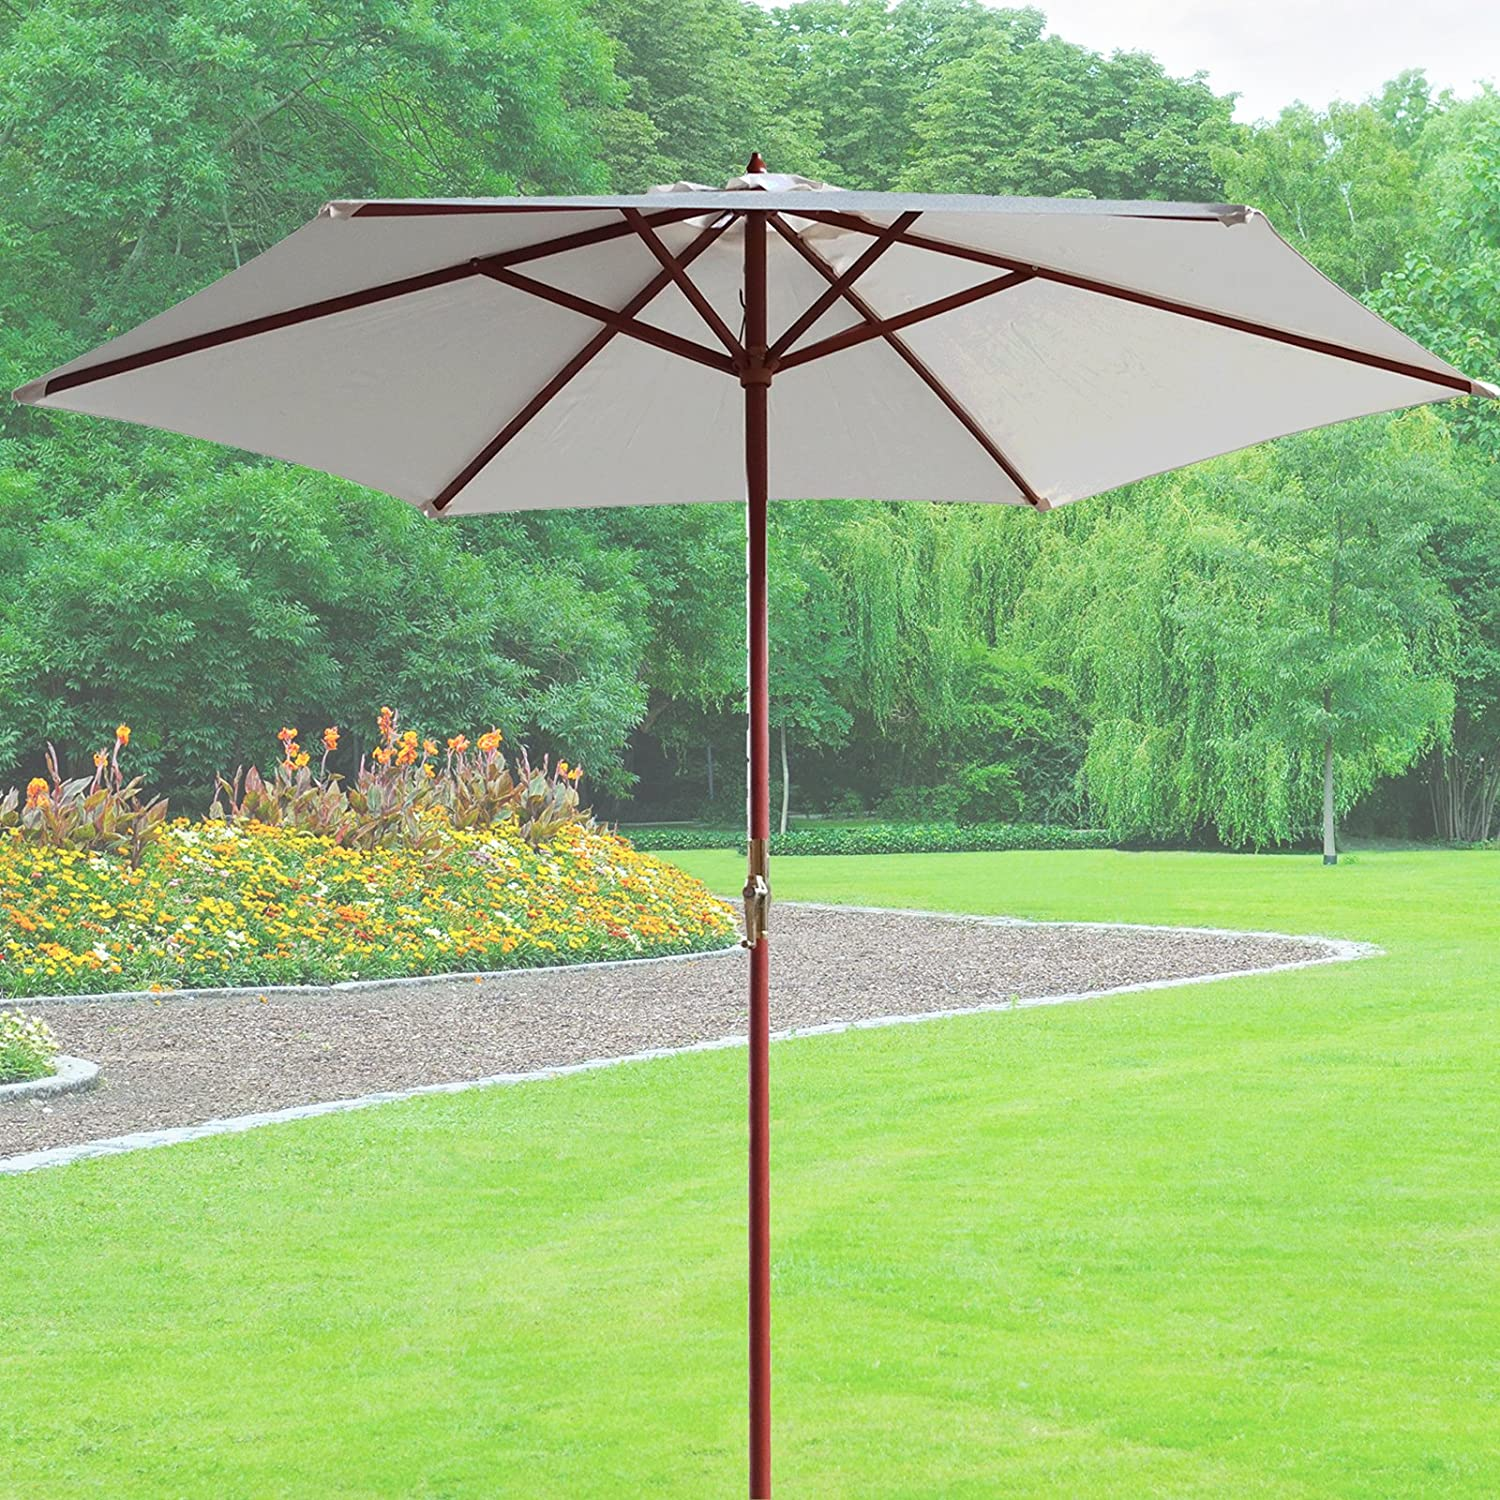 2.7M Crank Handle Round Outdoor Wooden Beige Cream Parasol Garden Furniture Patio Sun Shade Marko